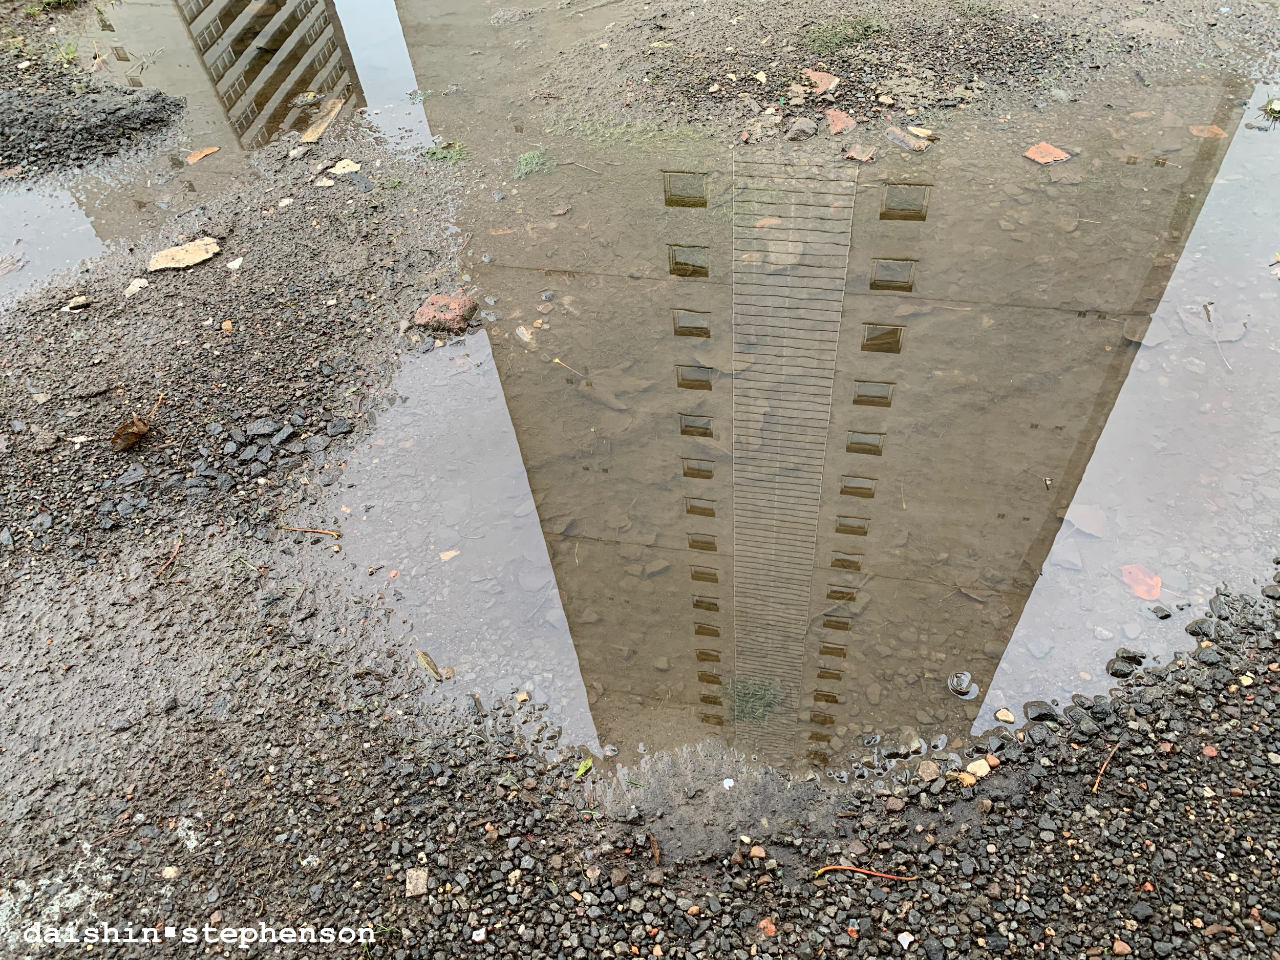 reflection of high flat in puddle